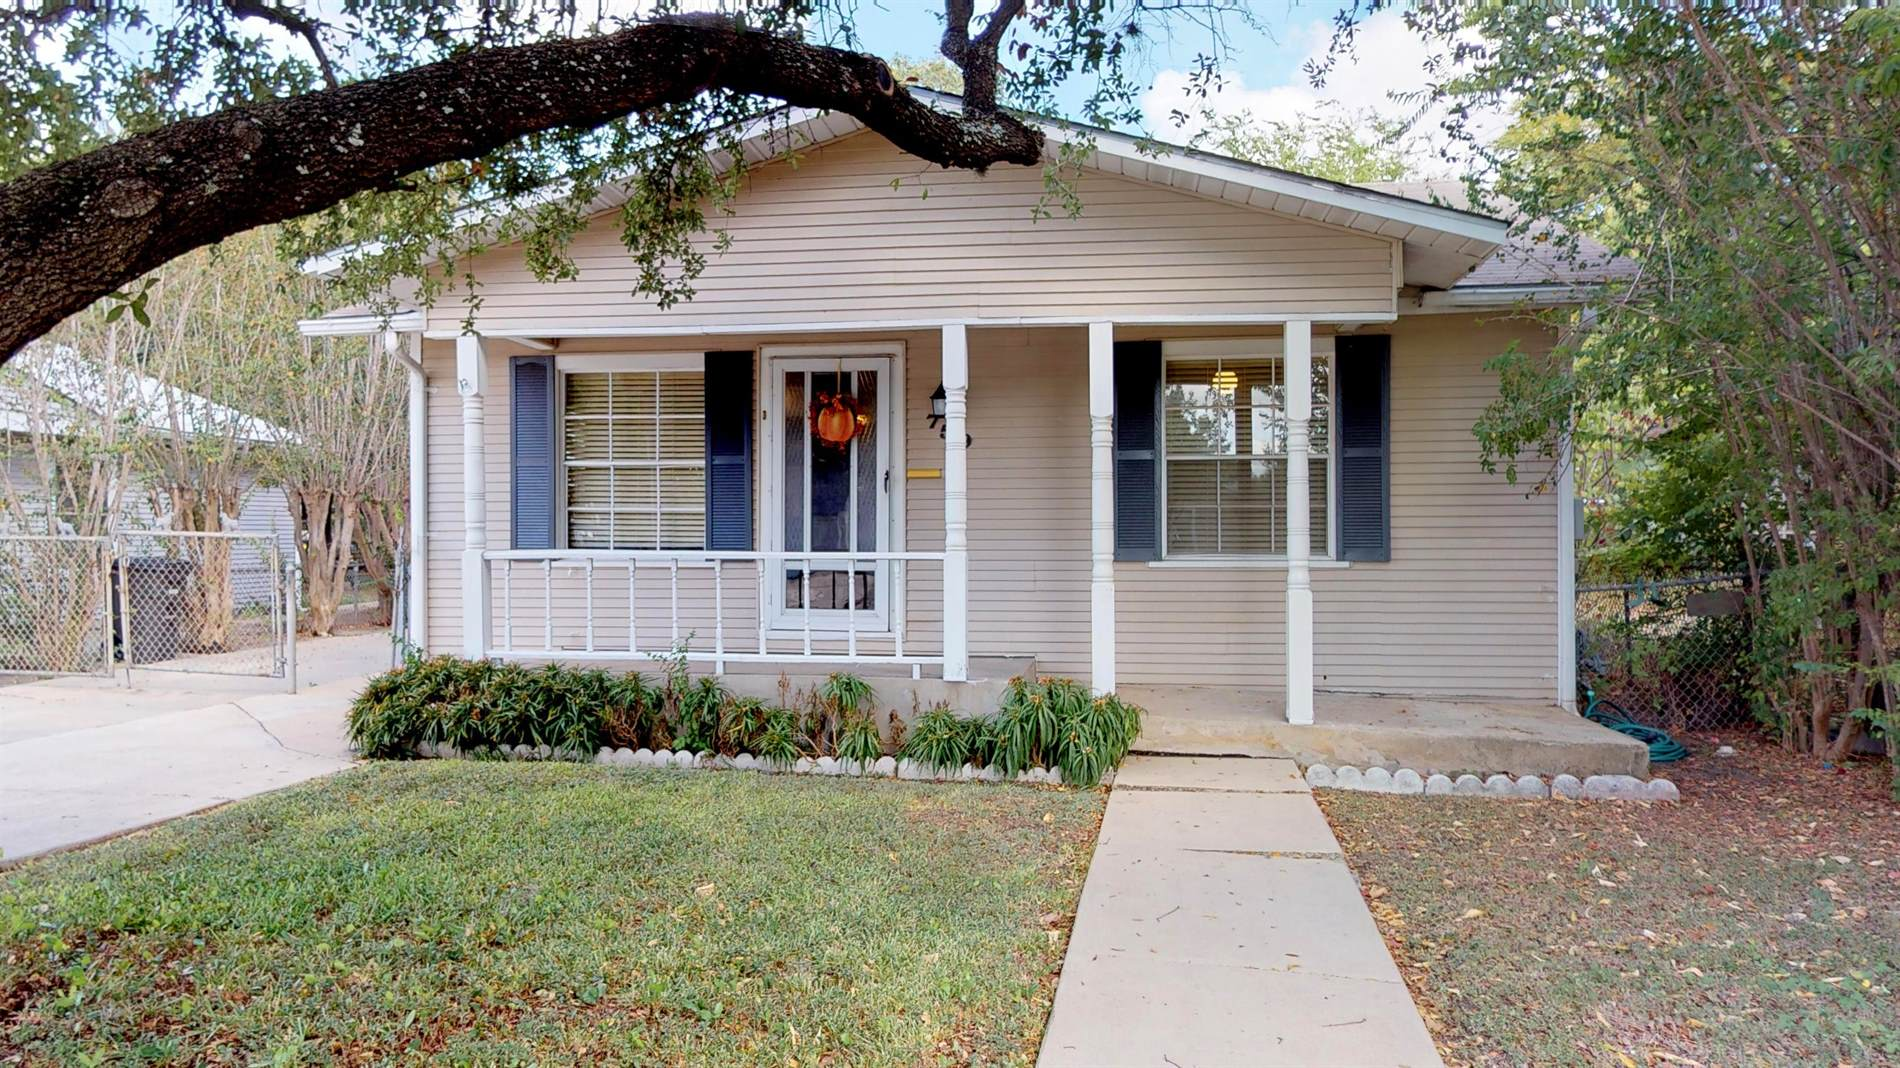 759 West Pyron Ave, San Antonio, TX 78221